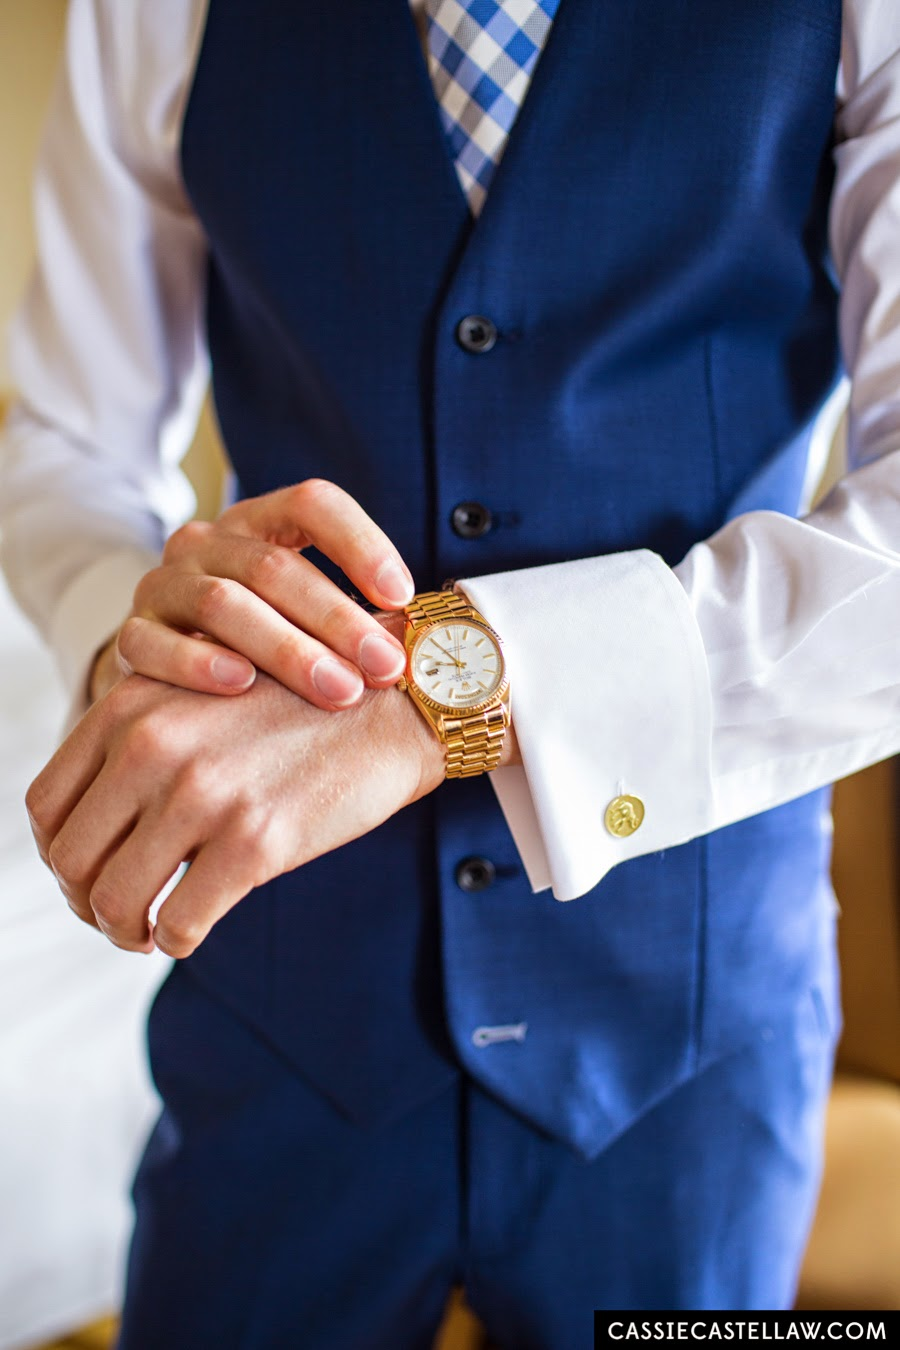 Groom's accessories: Vintage gold Rolex watch and gold elephant cufflinks. NYC Lifestyle wedding photography by Cassie Castellaw. www.cassiecastellaw.com